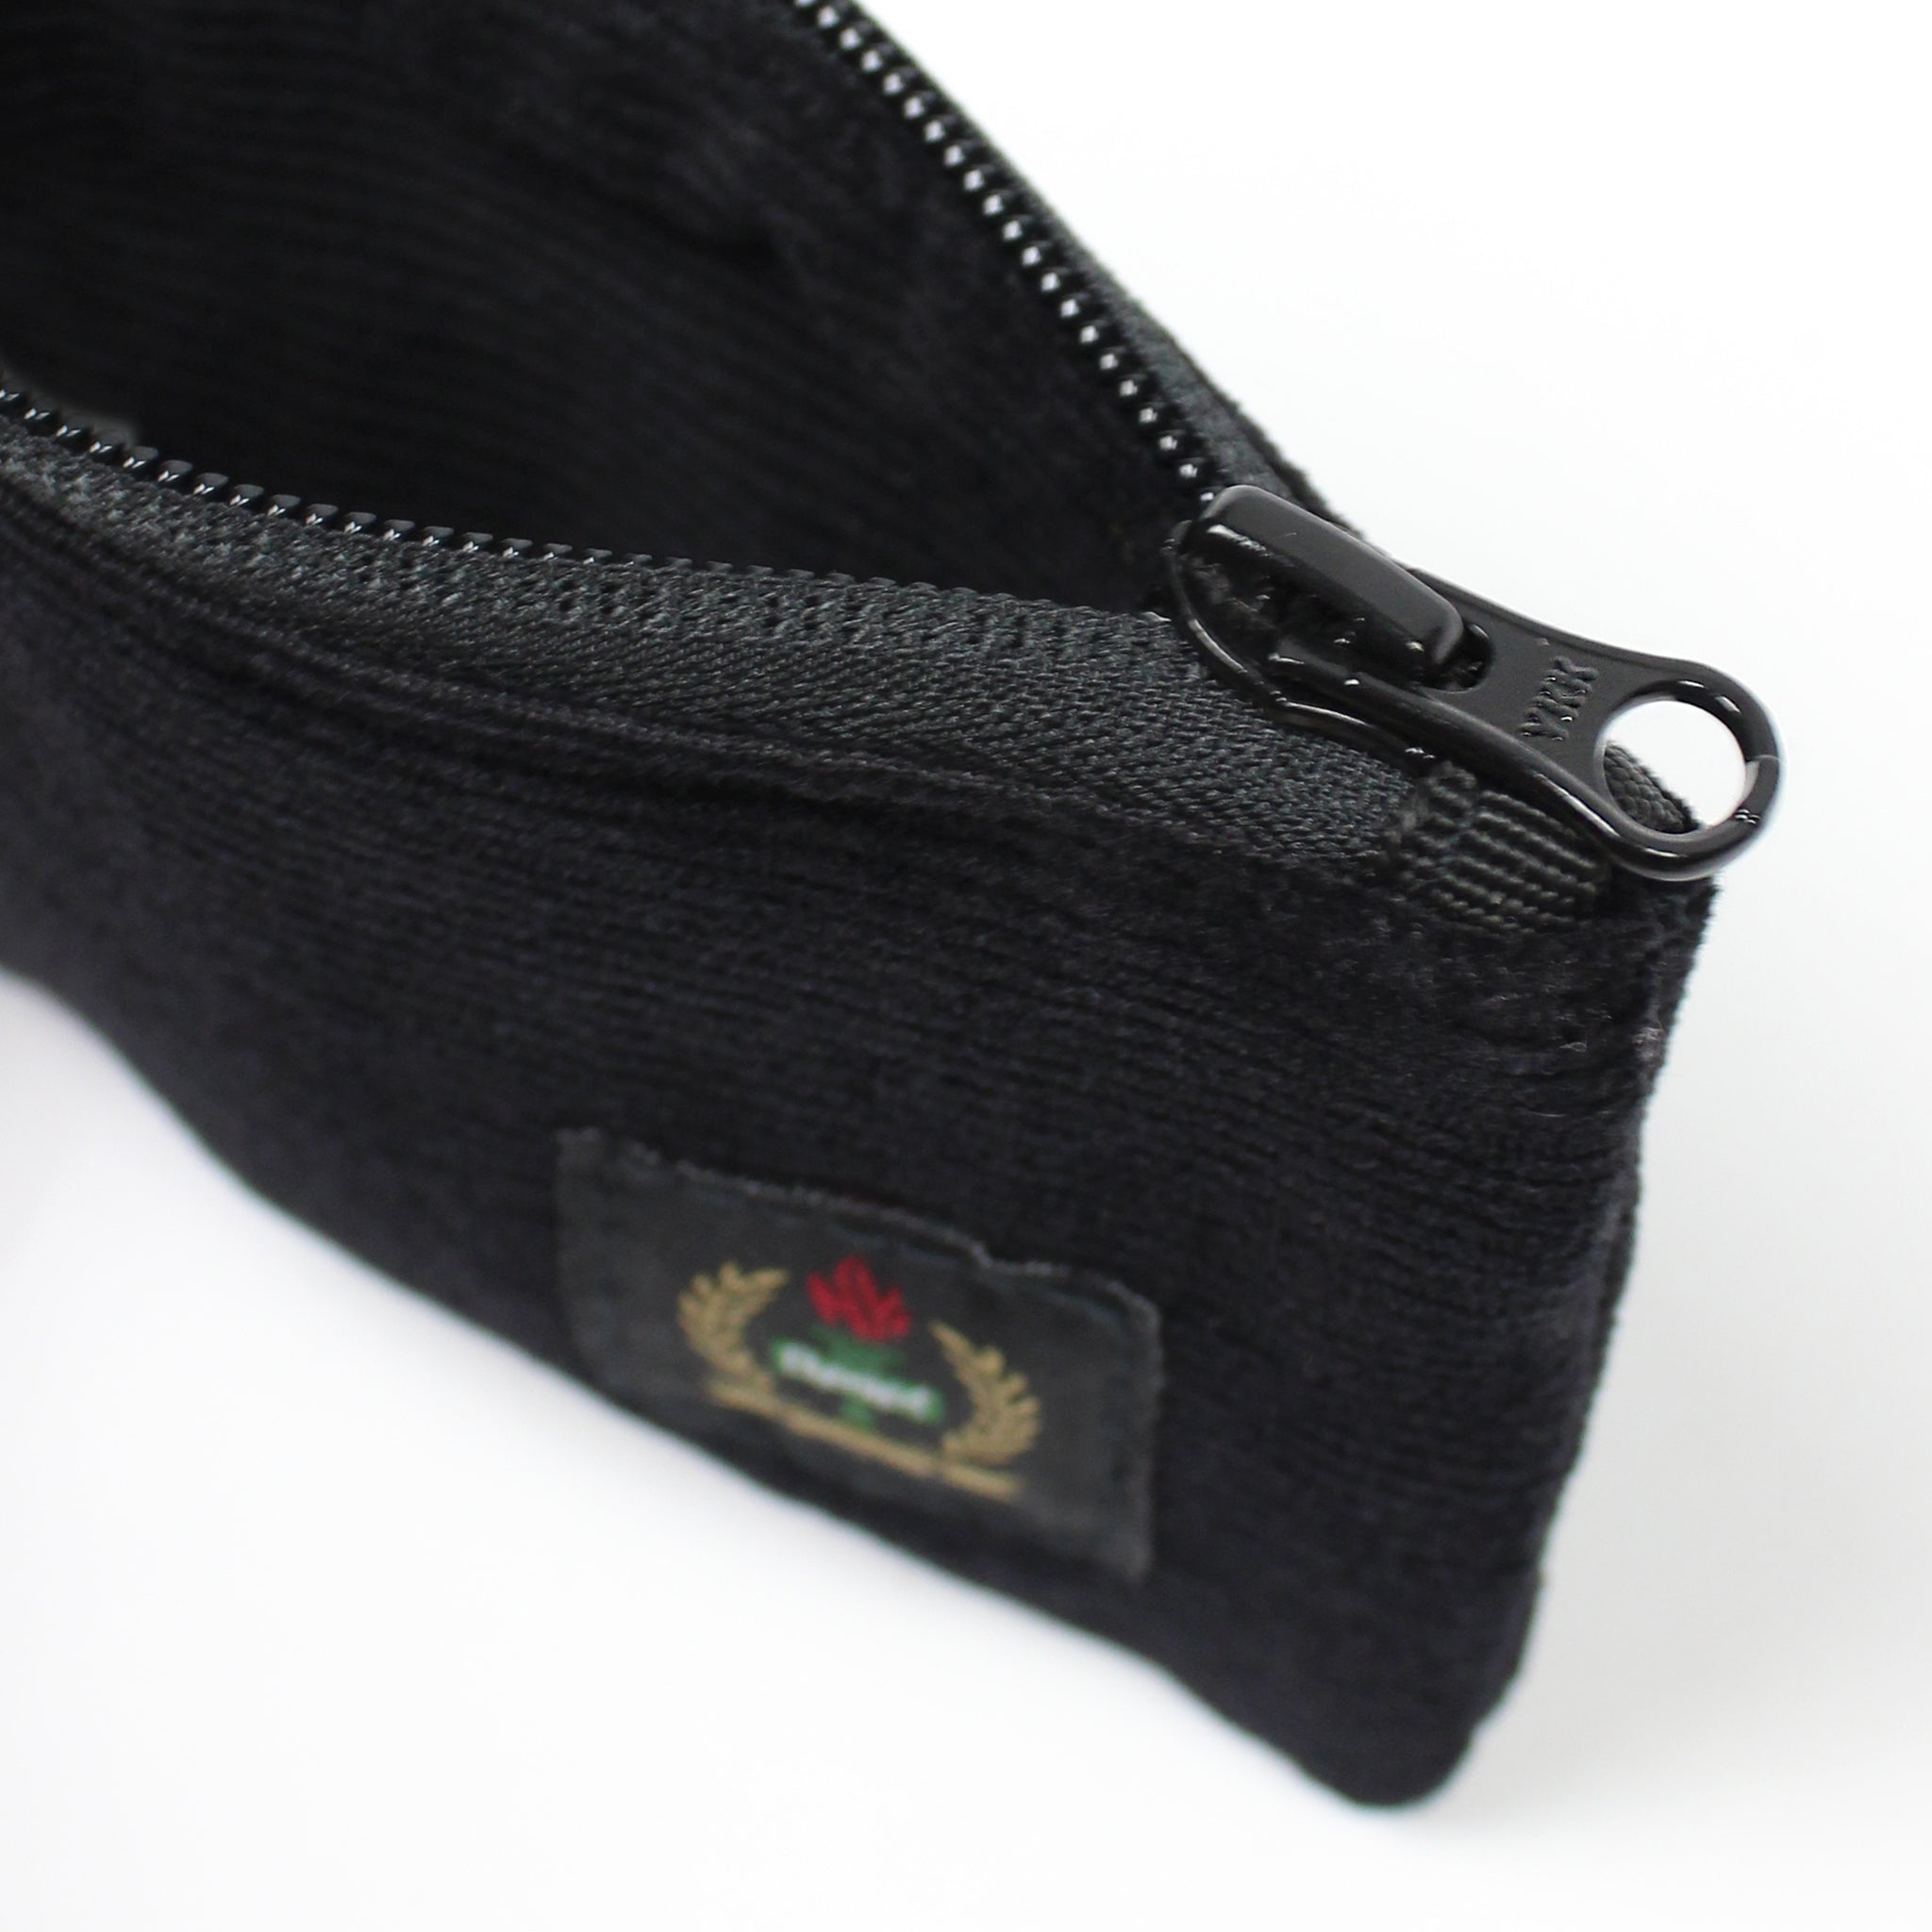 Liberty Zip Wallet - Black